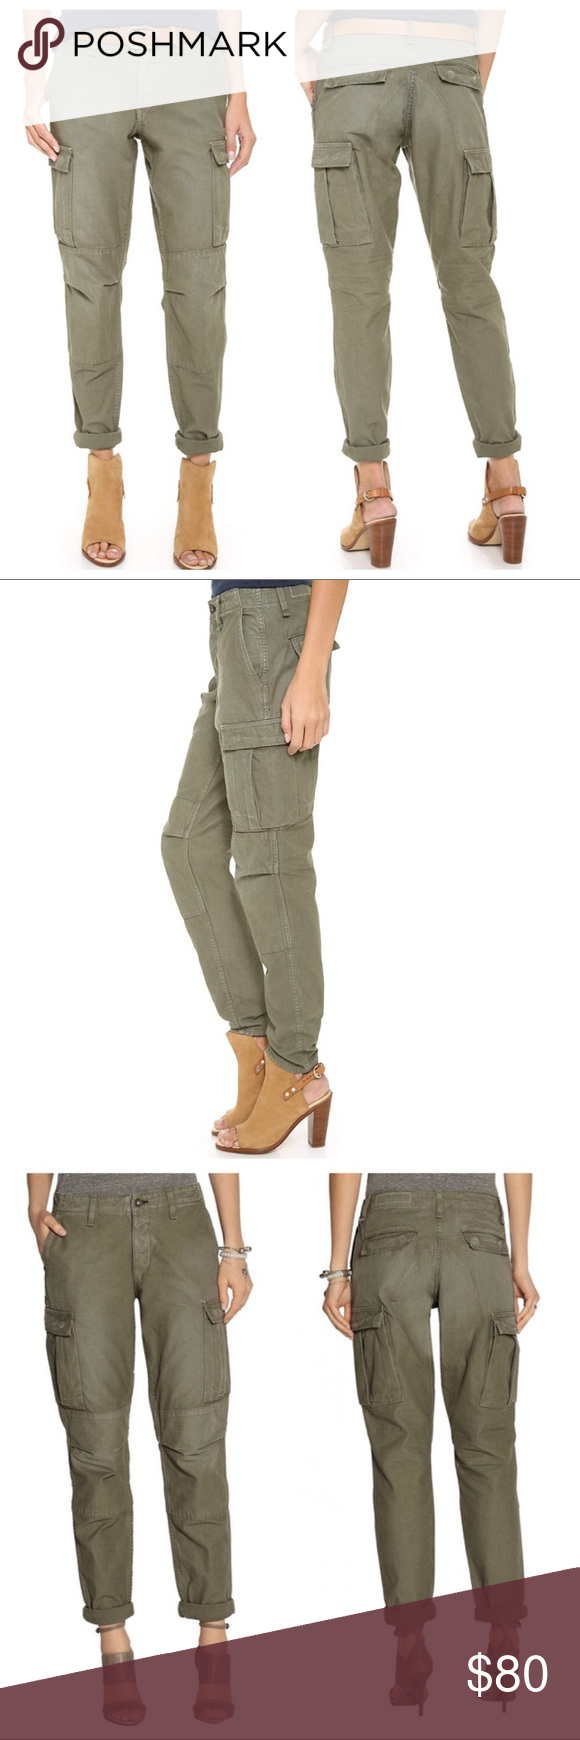 Rag & Bone The Combat Cargo Pants olive green, 25 These military-inspired Rag & …